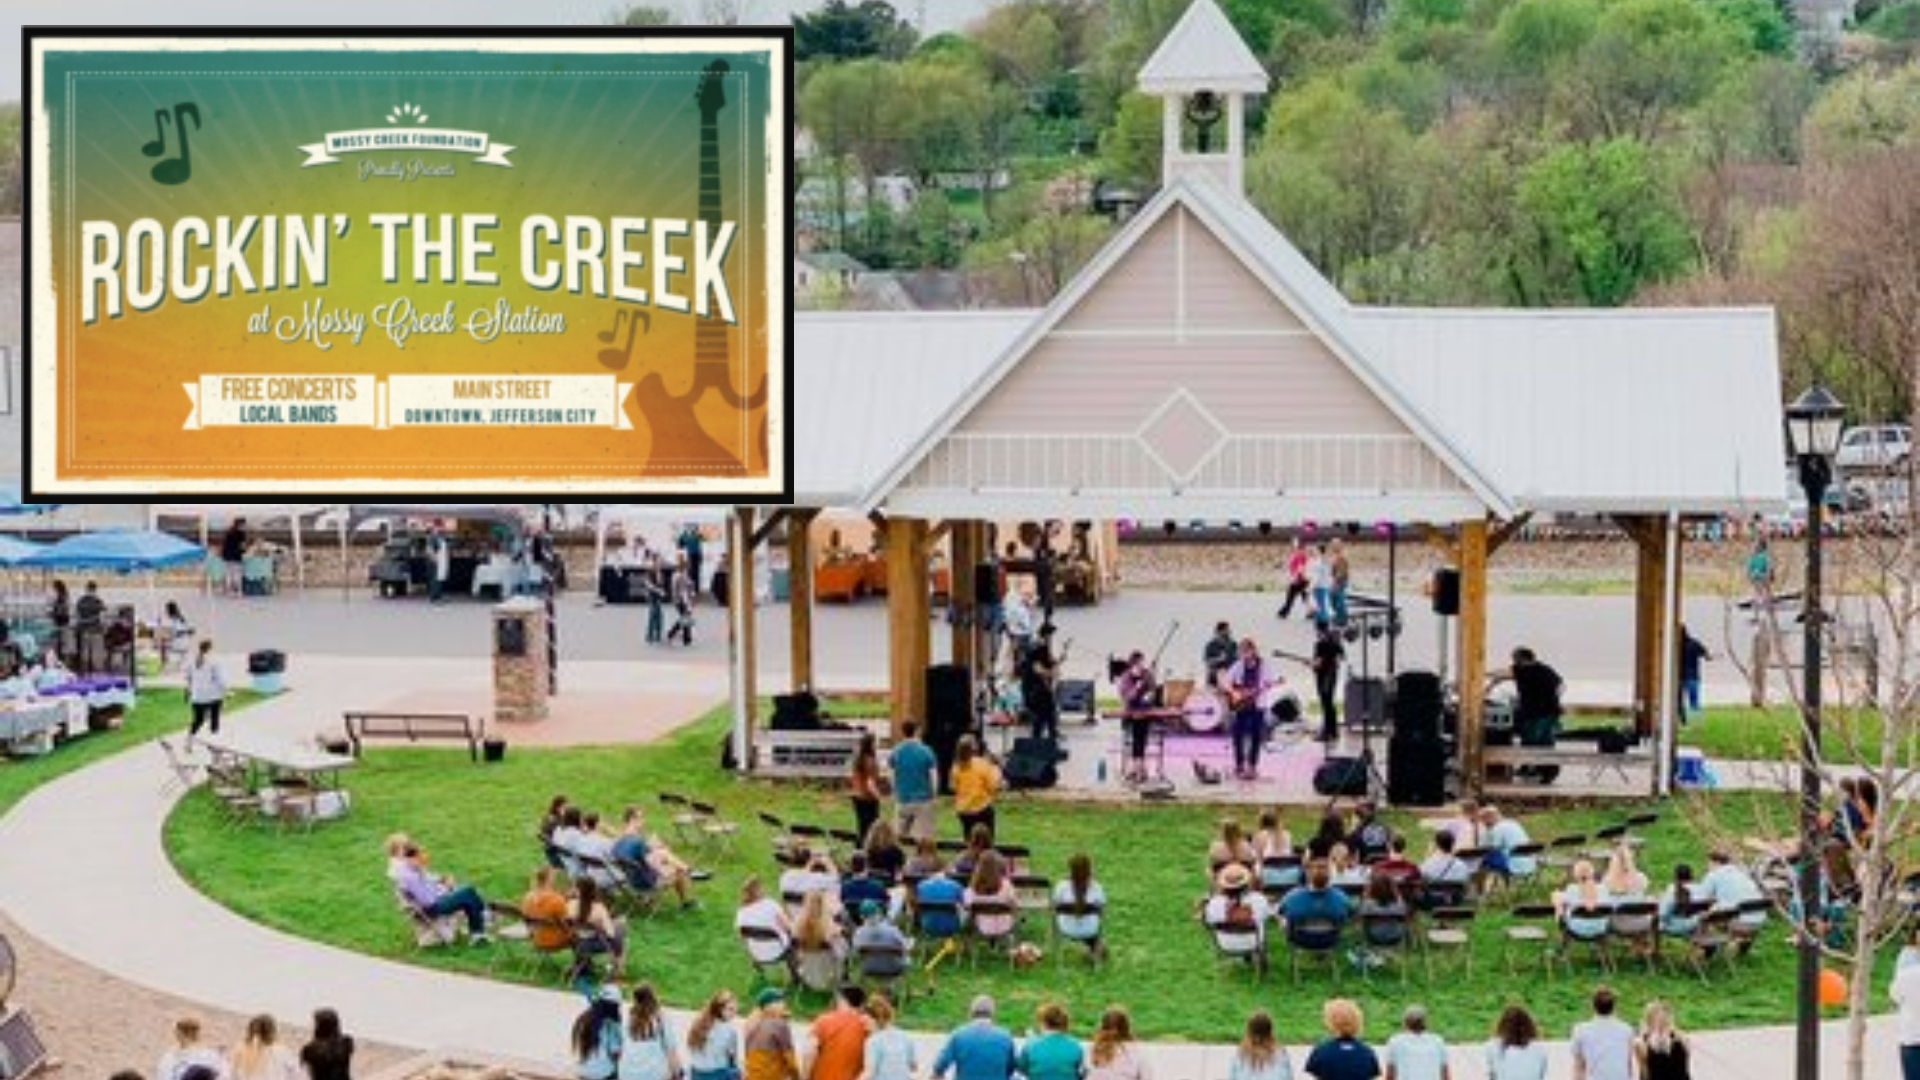 rockin the creek summer series music festival event in jefferson city tennessee